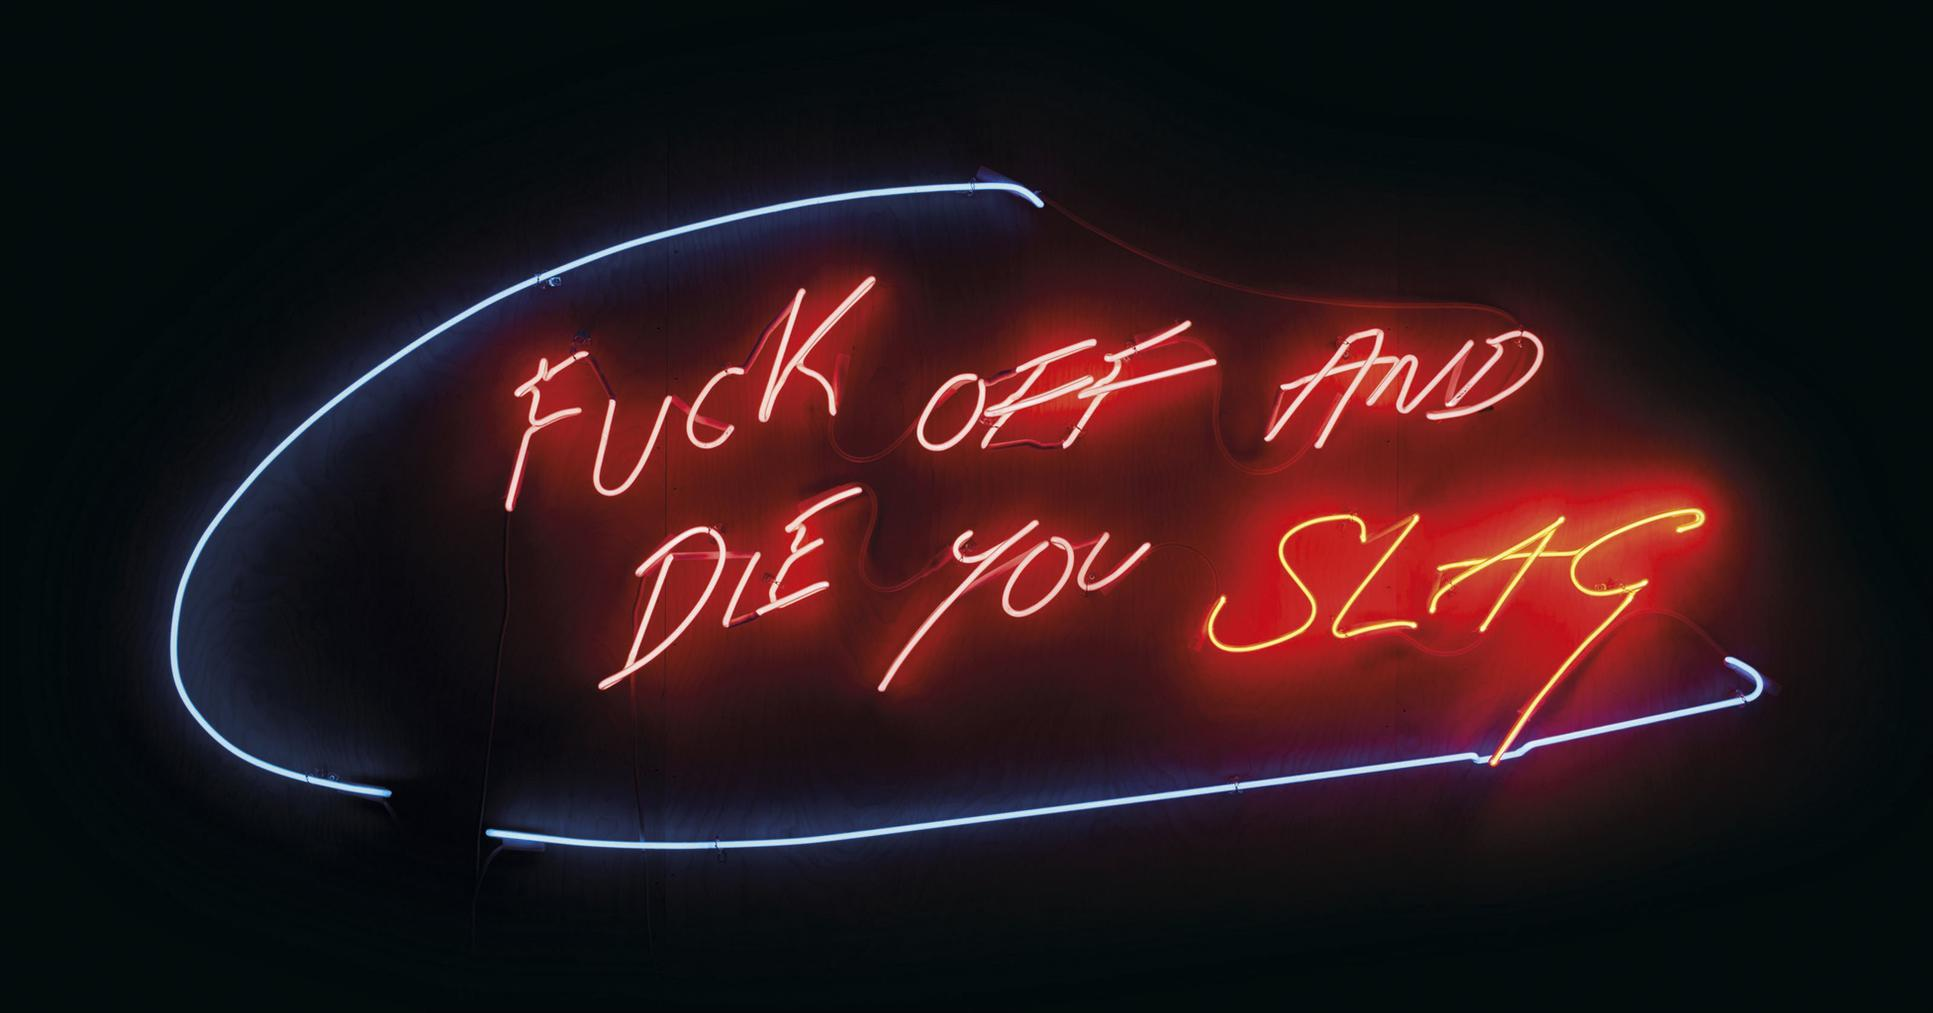 Tracey Emin-Fuck Off And Die You Slag-2002